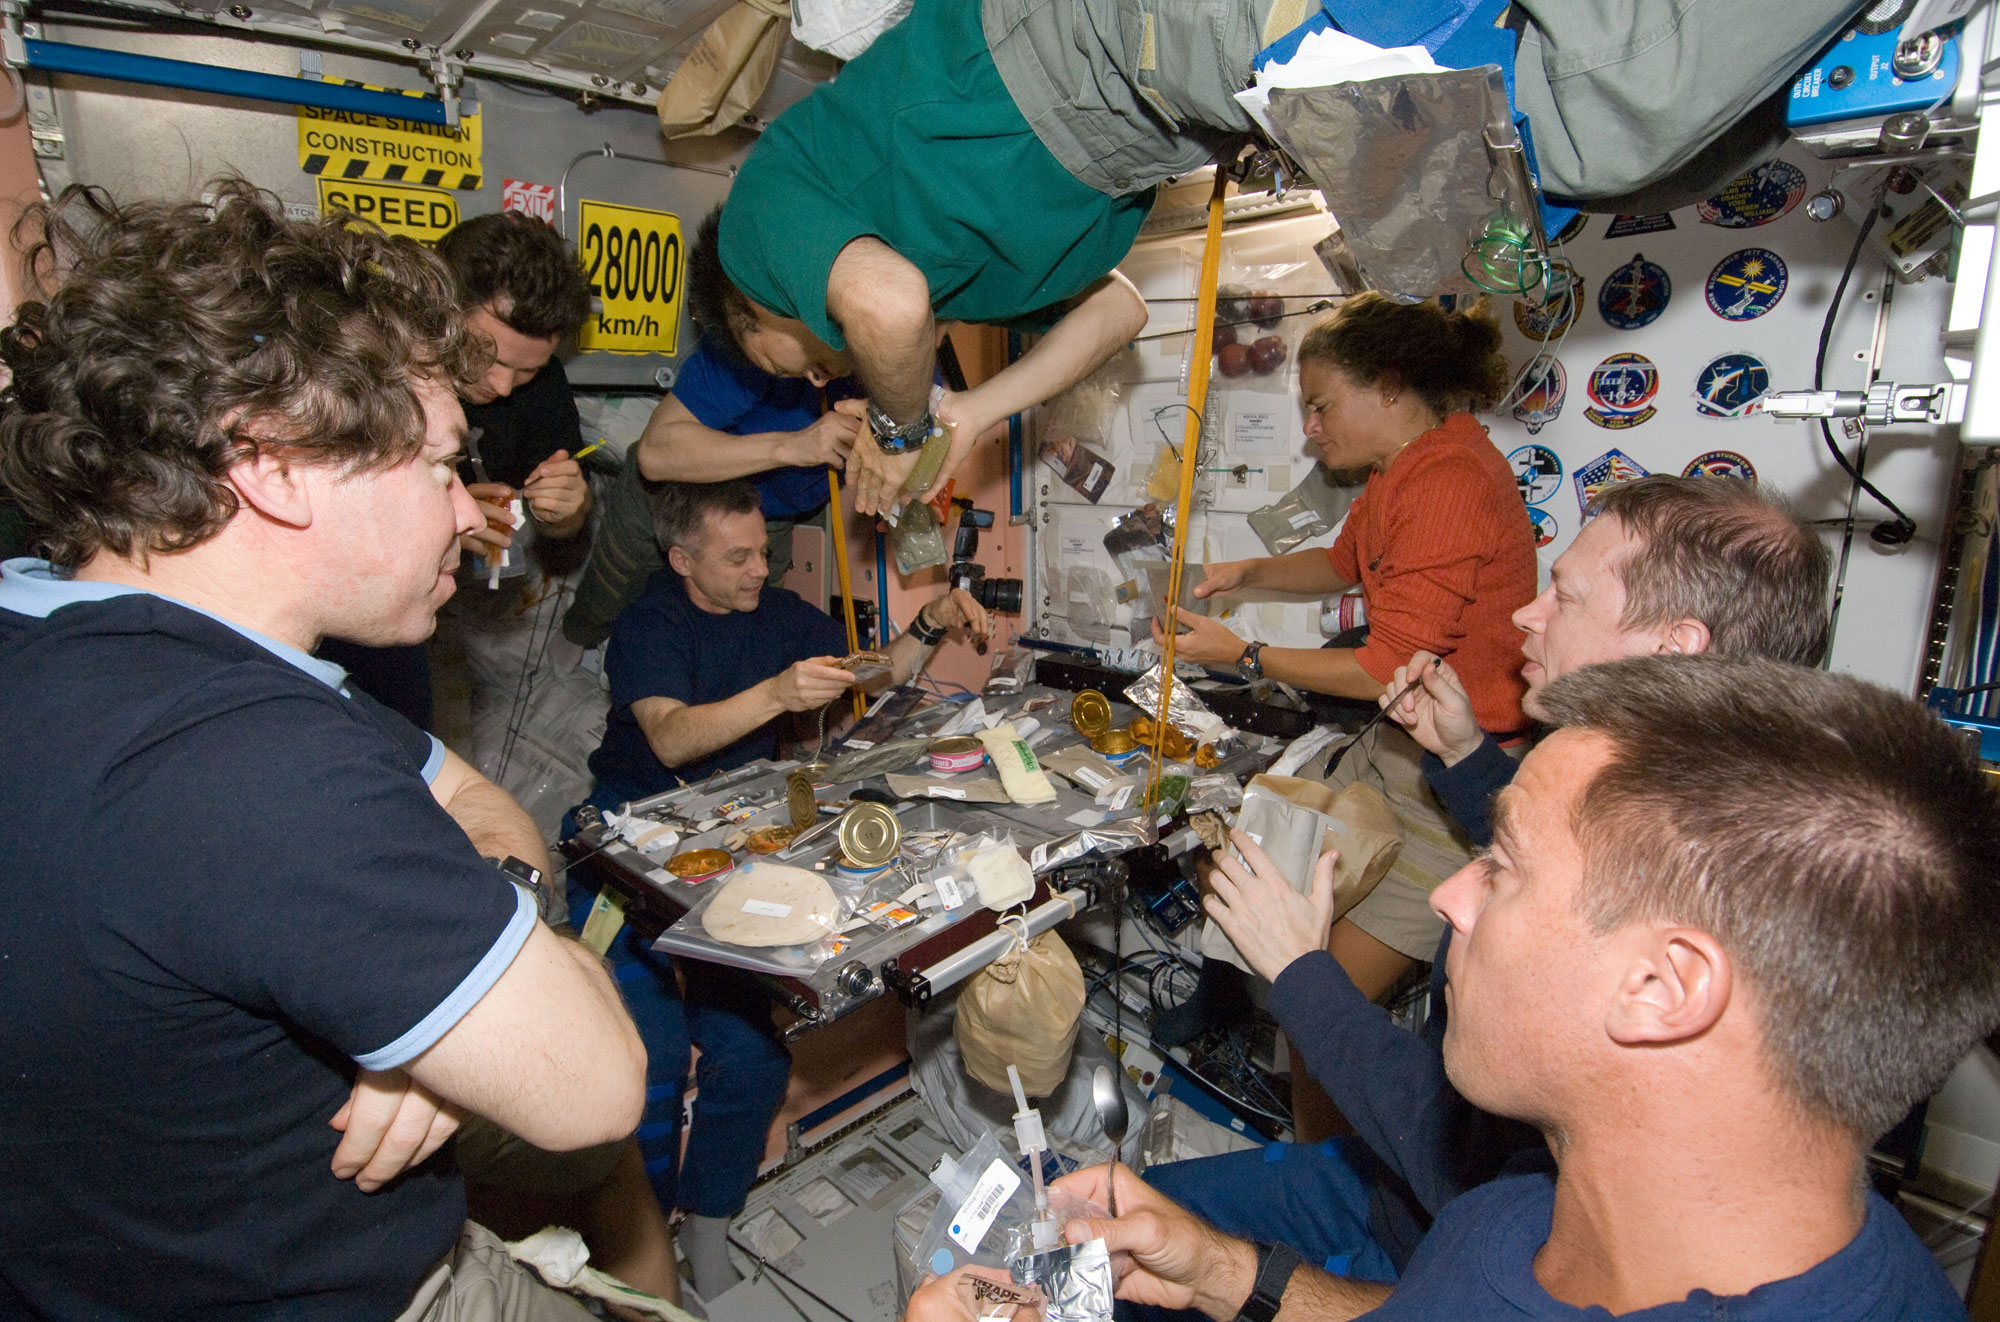 Nasa Astronauts Invite National Geographic Aboard Space